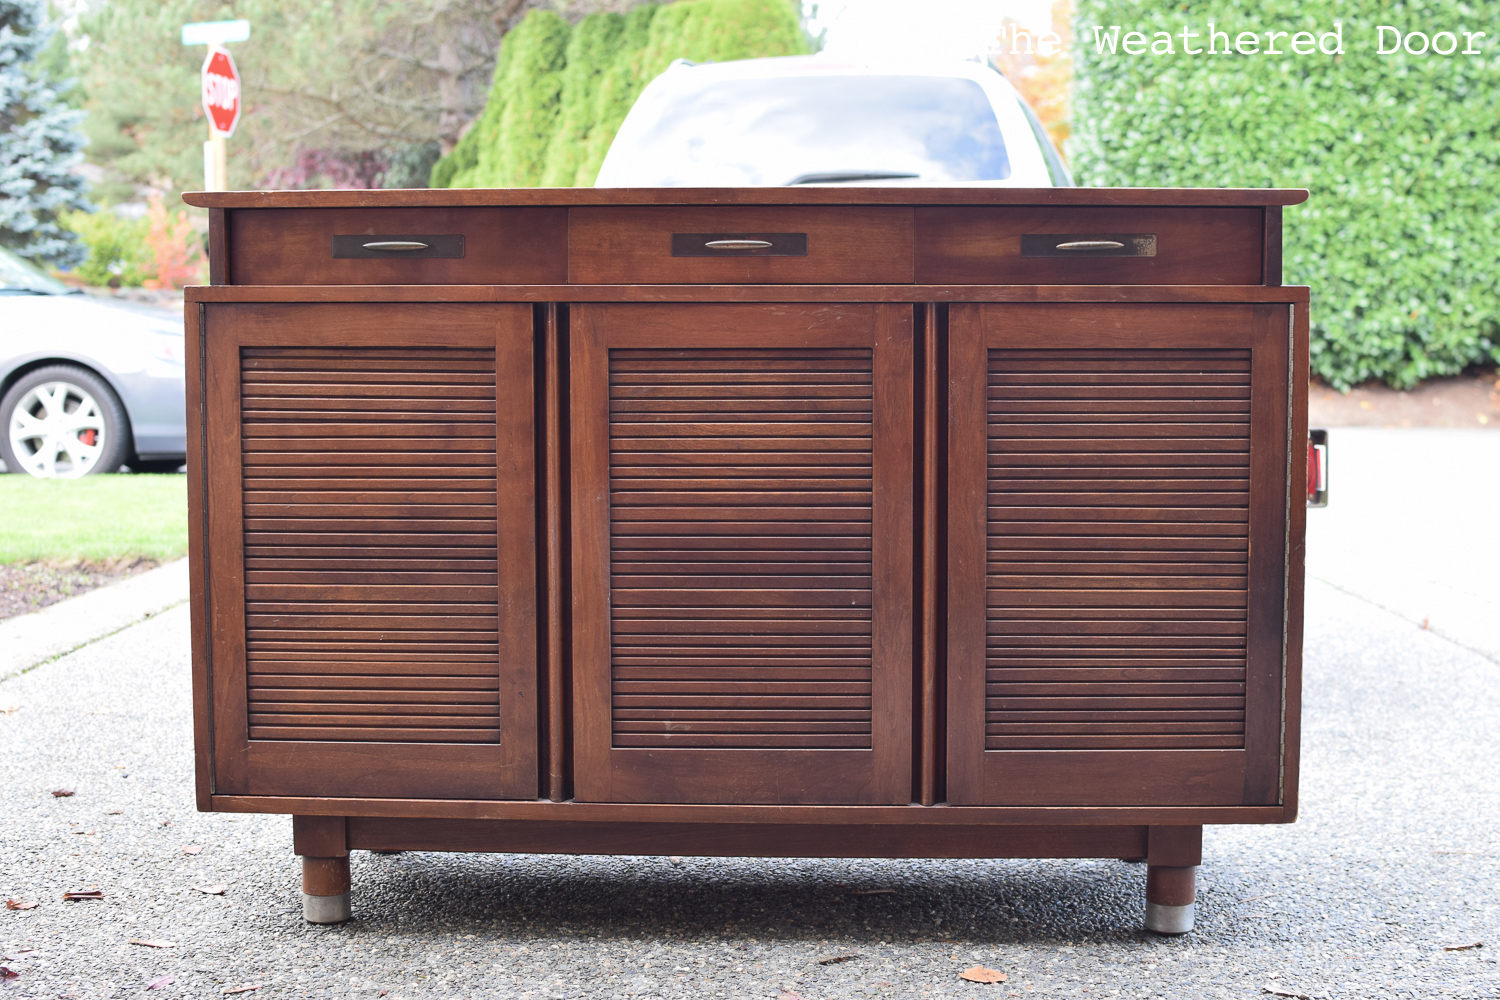 Willed china hutch turned cabinet and Bleed Through